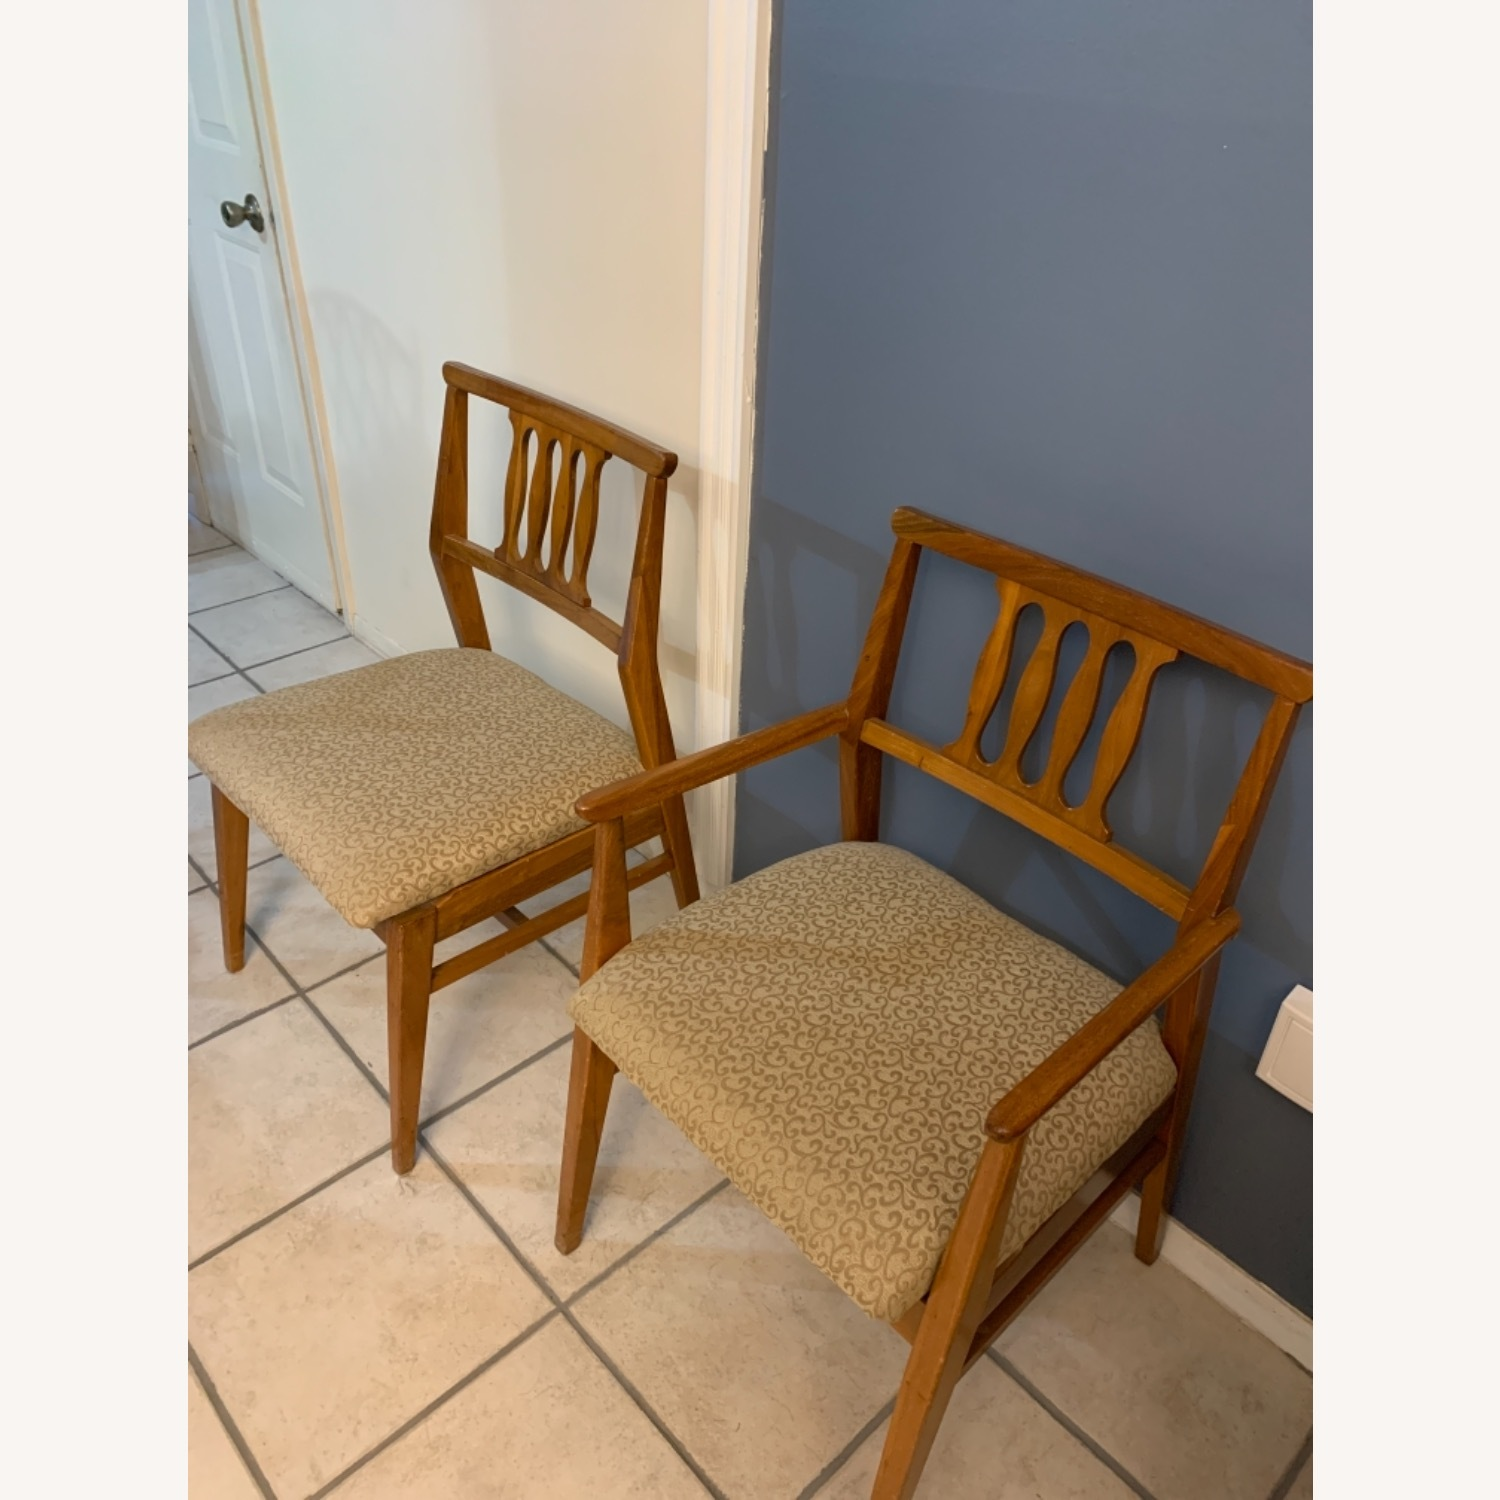 Hickory Furniture Company Dining Chair Set - image-1